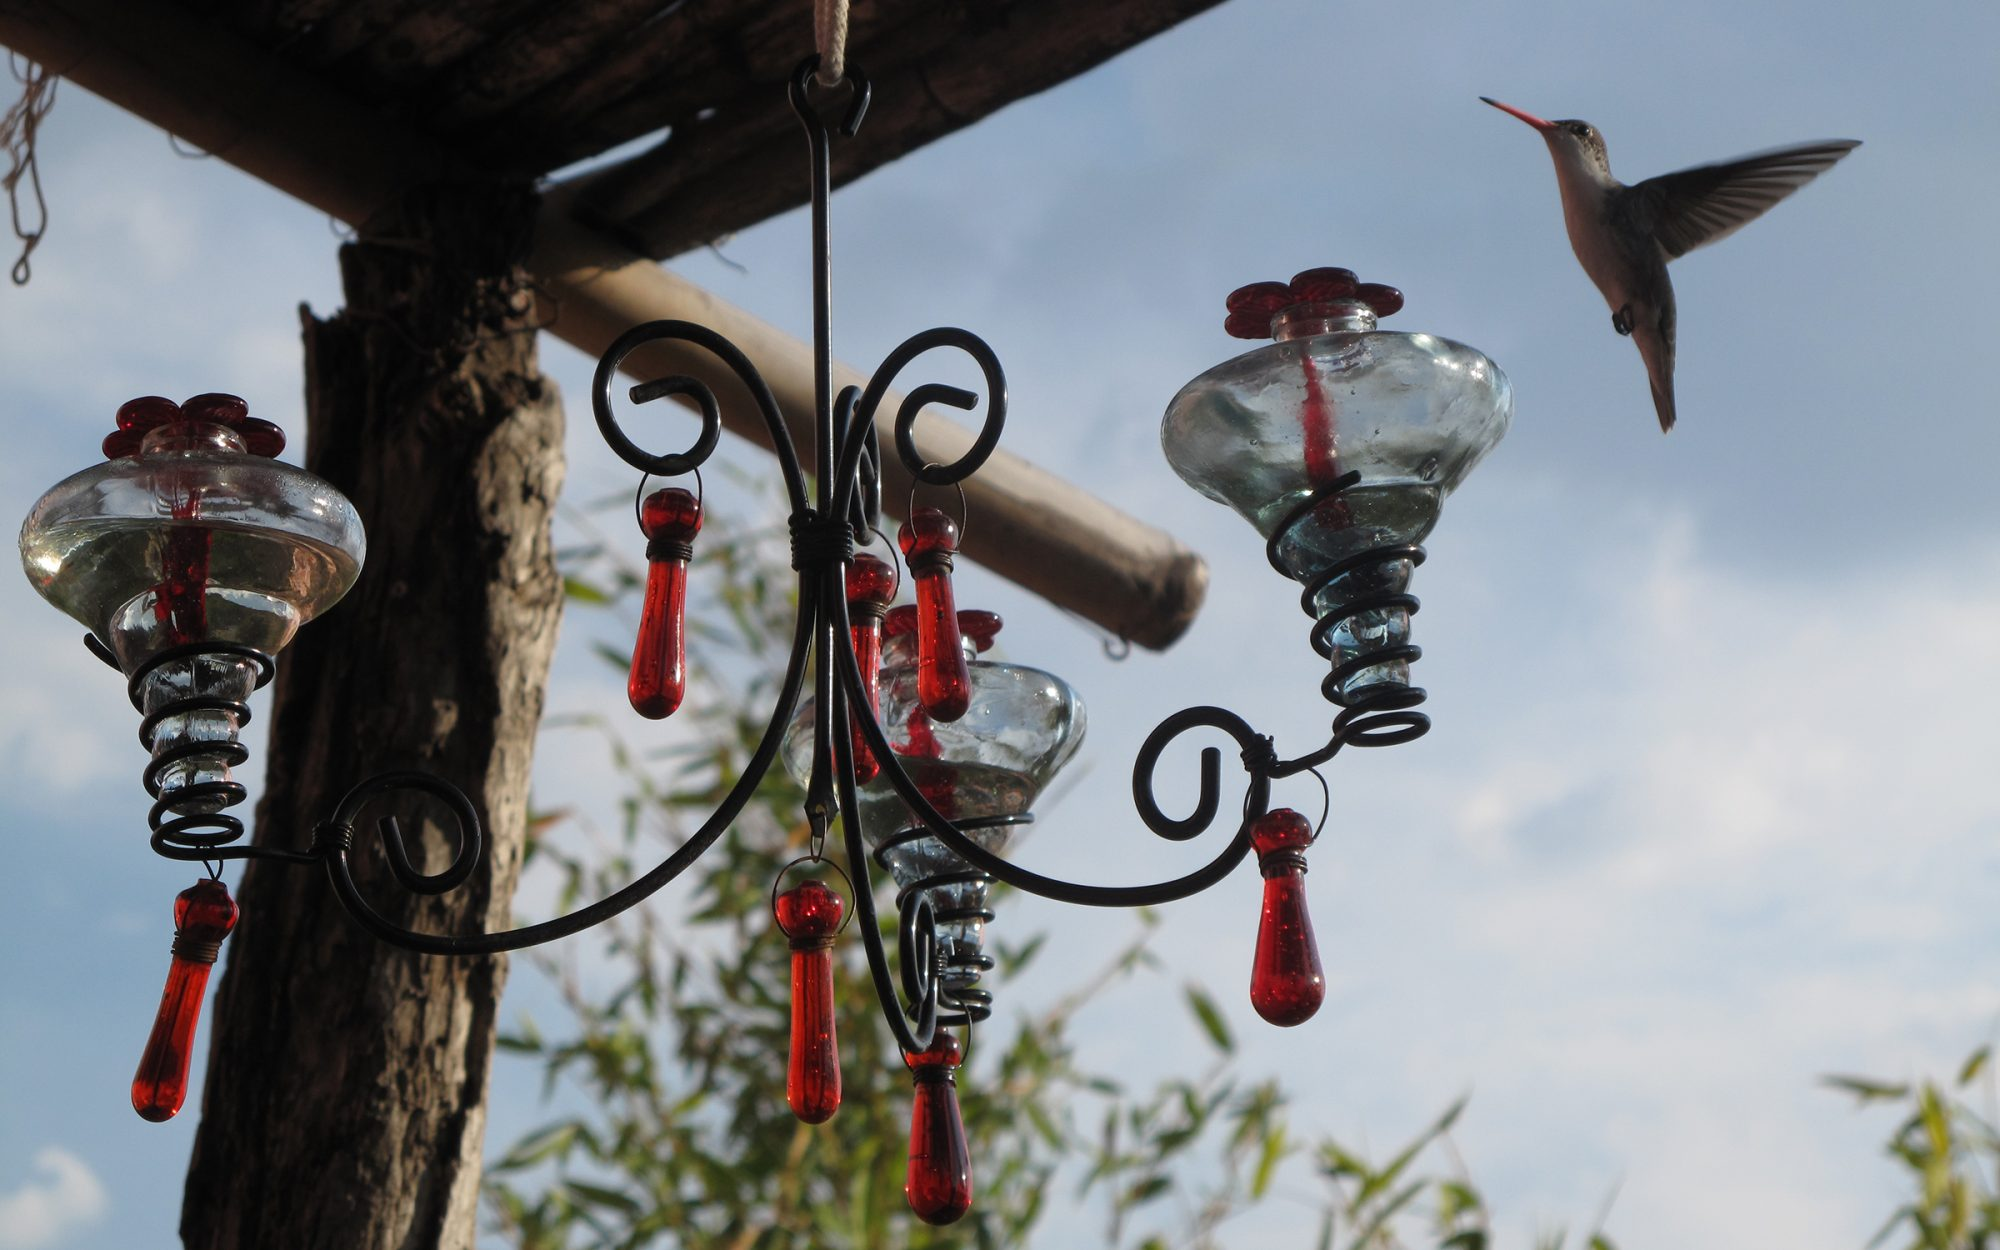 An International Hummingbird Festival in Mexico